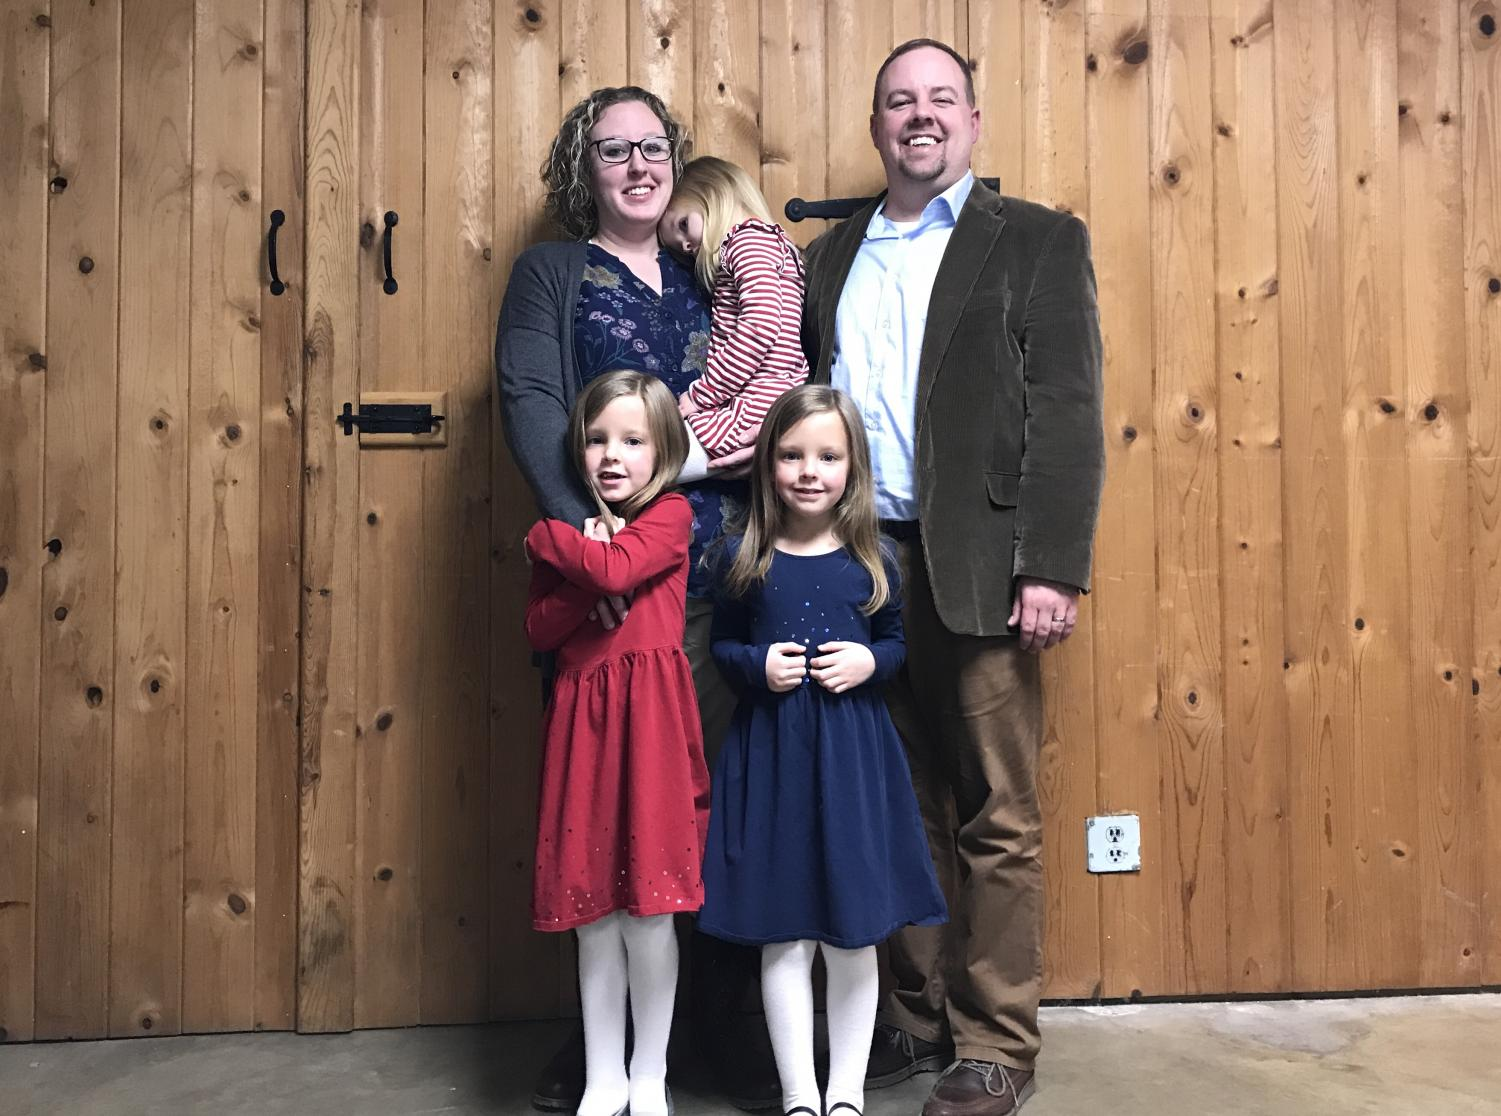 Kristi (KJ) Kearns poses for a photo with her husband and their three daughters following her first meeting as a member of the New Concord Village Council on Feb. 11.